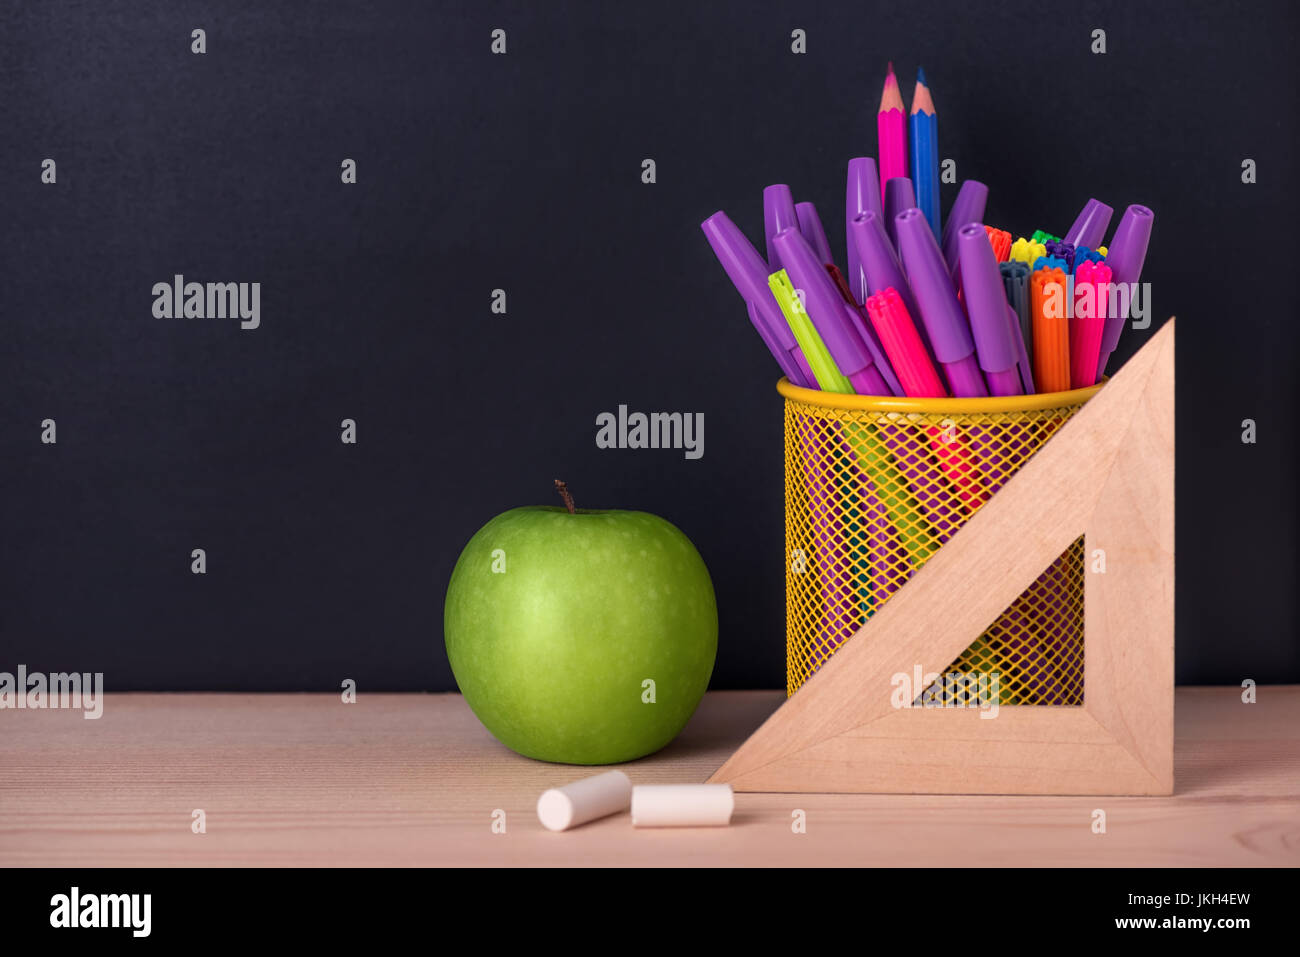 Education Concept With Green Apple Ruler Or Triangle Felt Pens Chalks Over Black Chalkboard Background Close Up